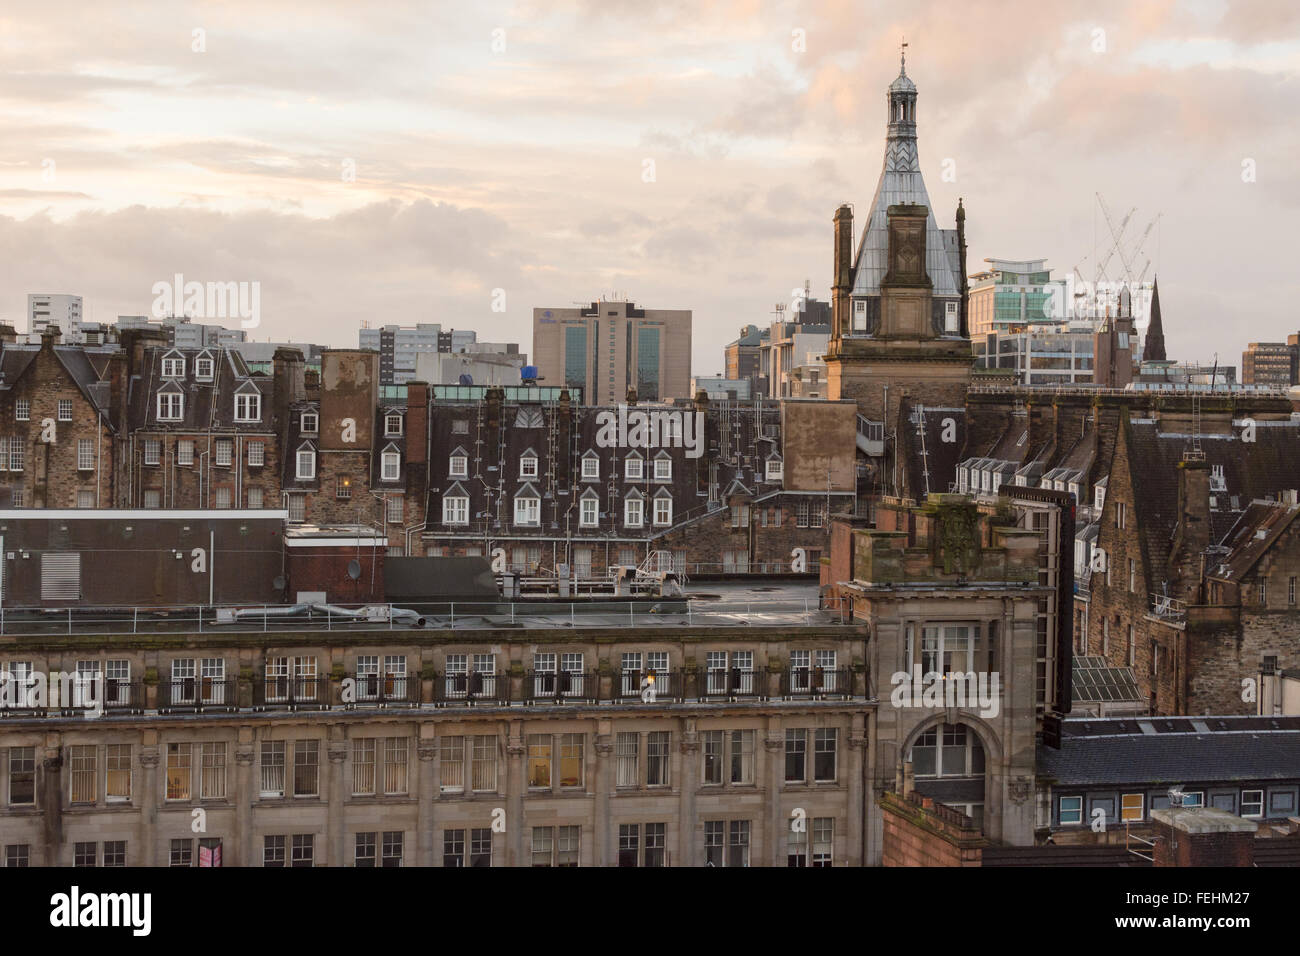 Glasgow city skyline - buildings and rooftops at sunset - Scotland, UK - Stock Image